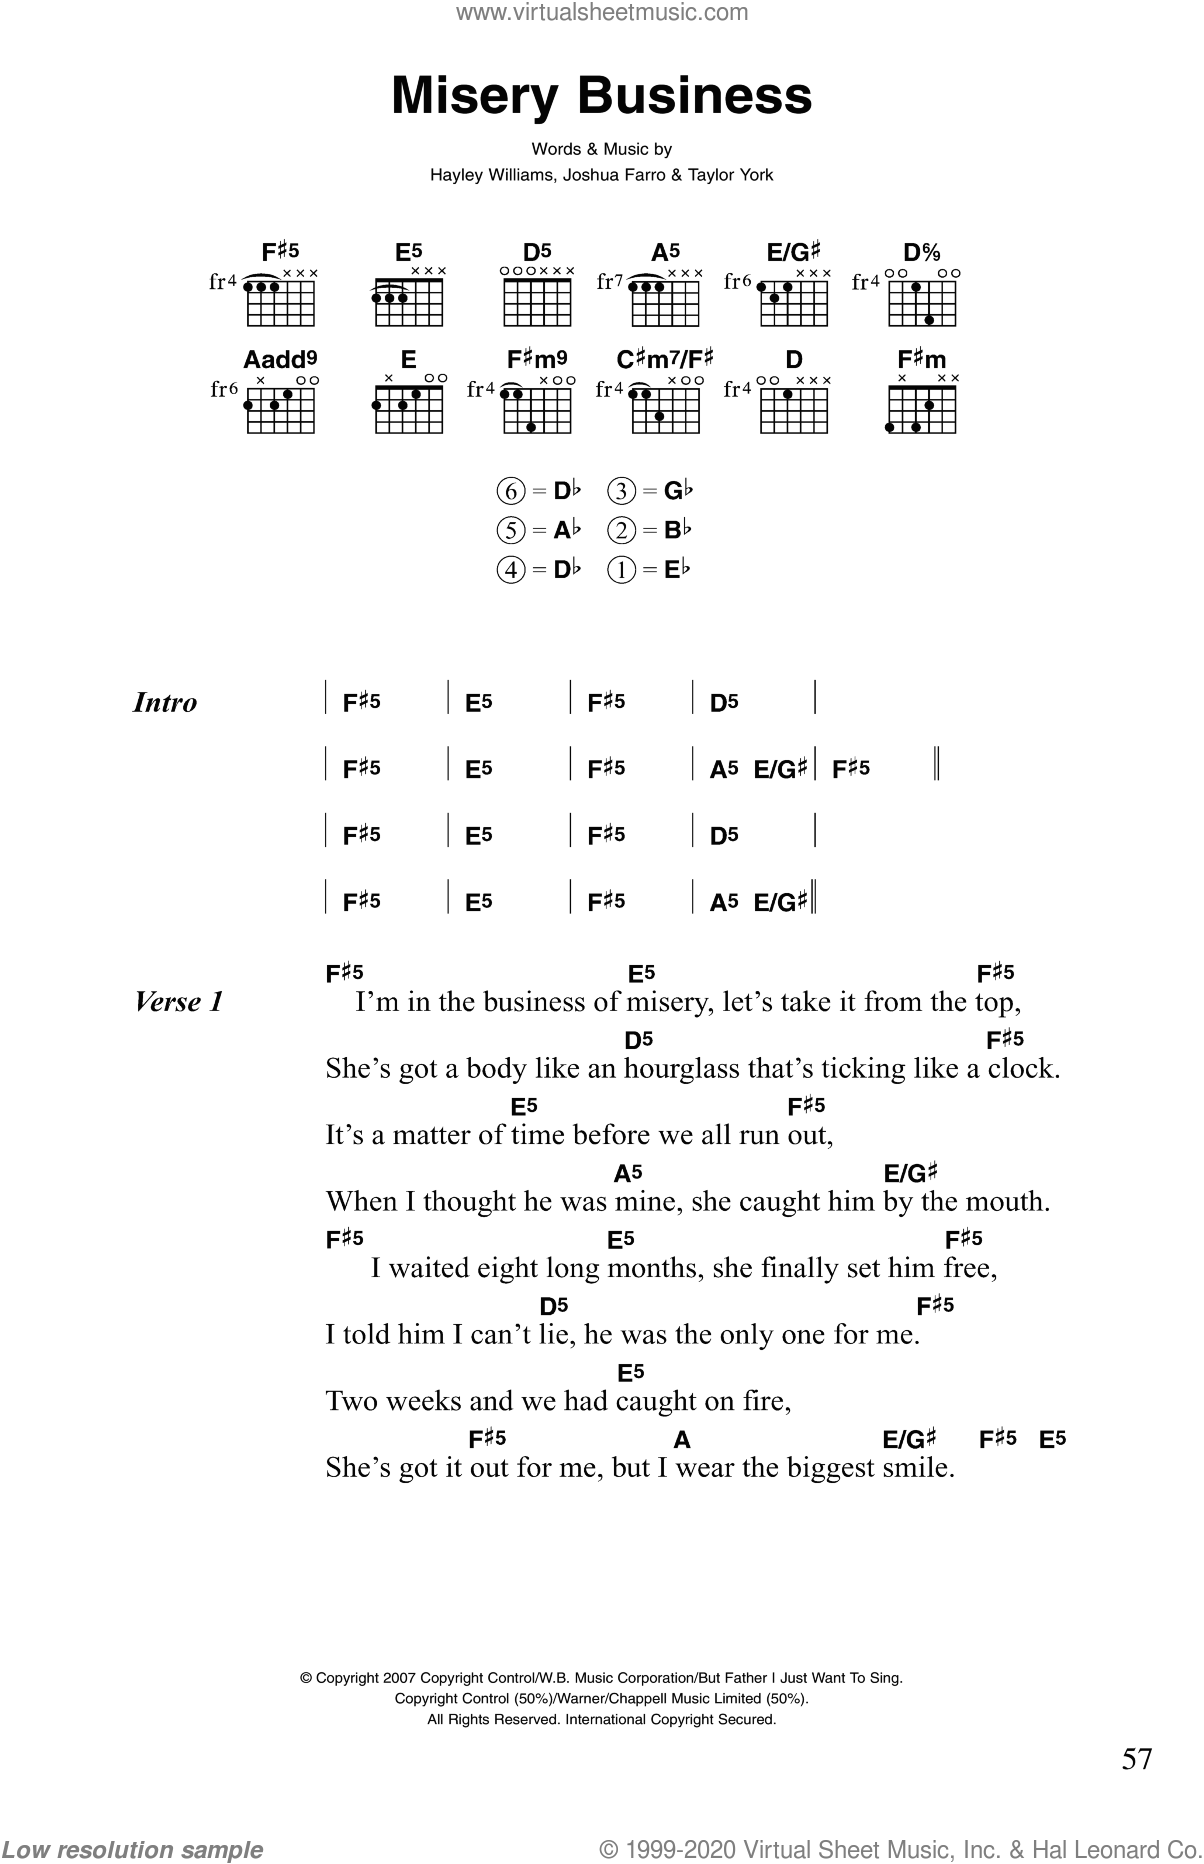 Paramore Misery Business Sheet Music For Guitar Chords Pdf